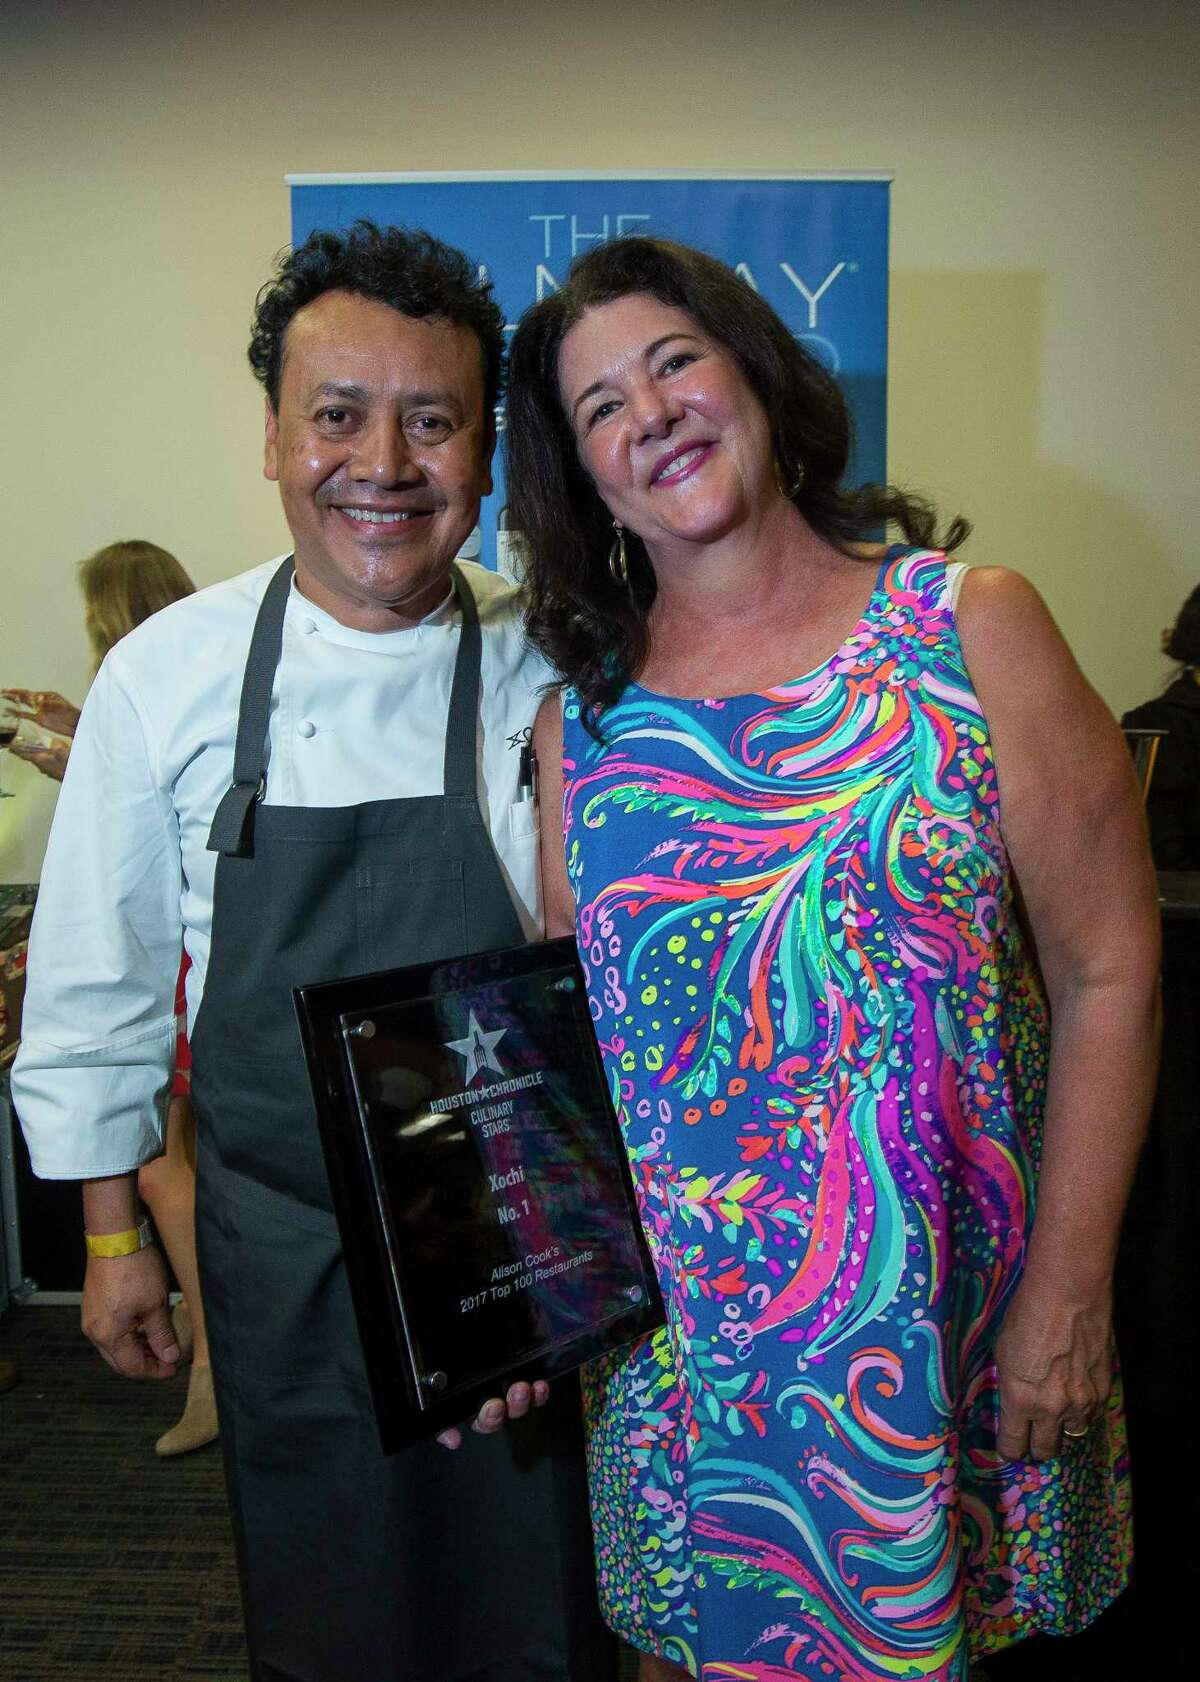 Chef Hugo Ortega, and Tracy Vaught, co-owners of the H-Town Restaurant Group, announced they will open a new restaurant in Uptown Park slated for 2020.